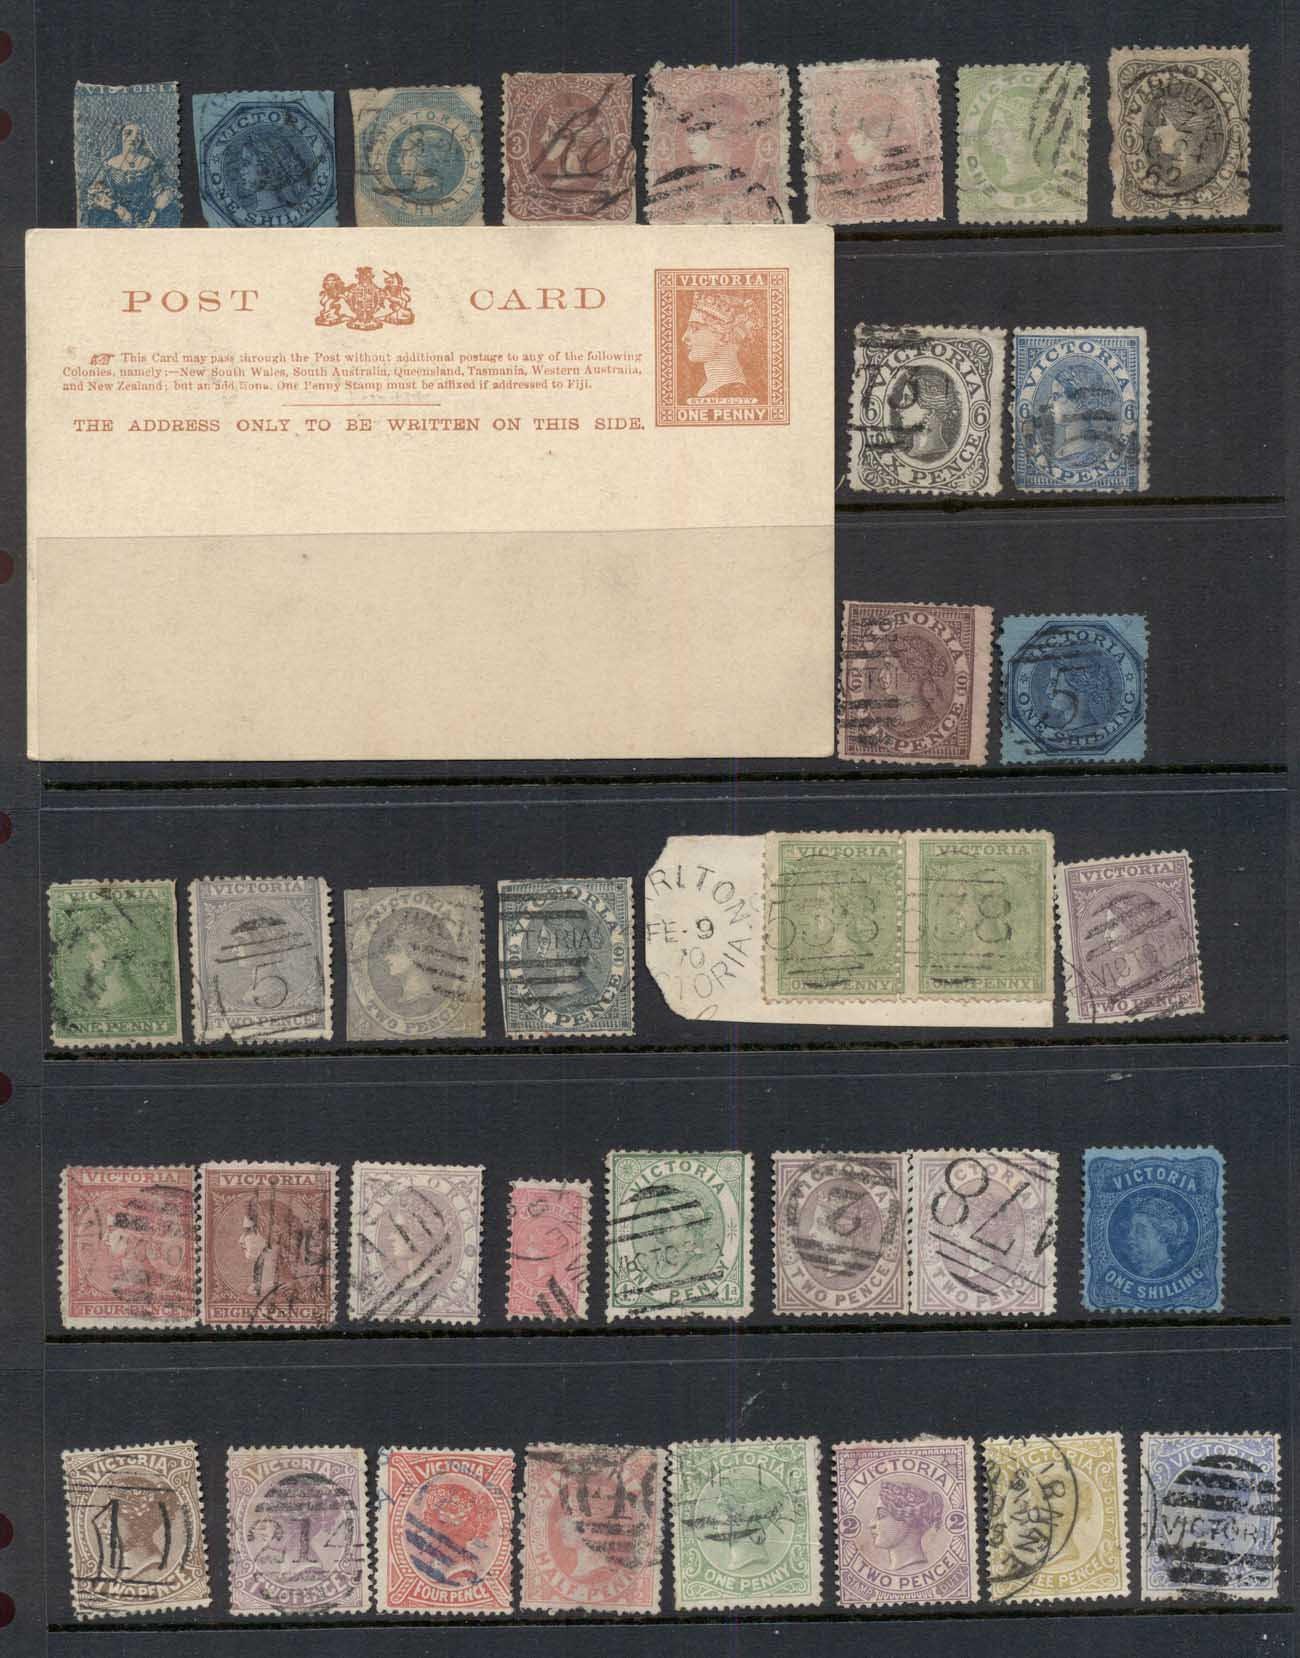 VIC 1860's on Assorted Oddments, duplicates, interest for postmarks, perforations, shades & watermark varieties, (faults)14 sca